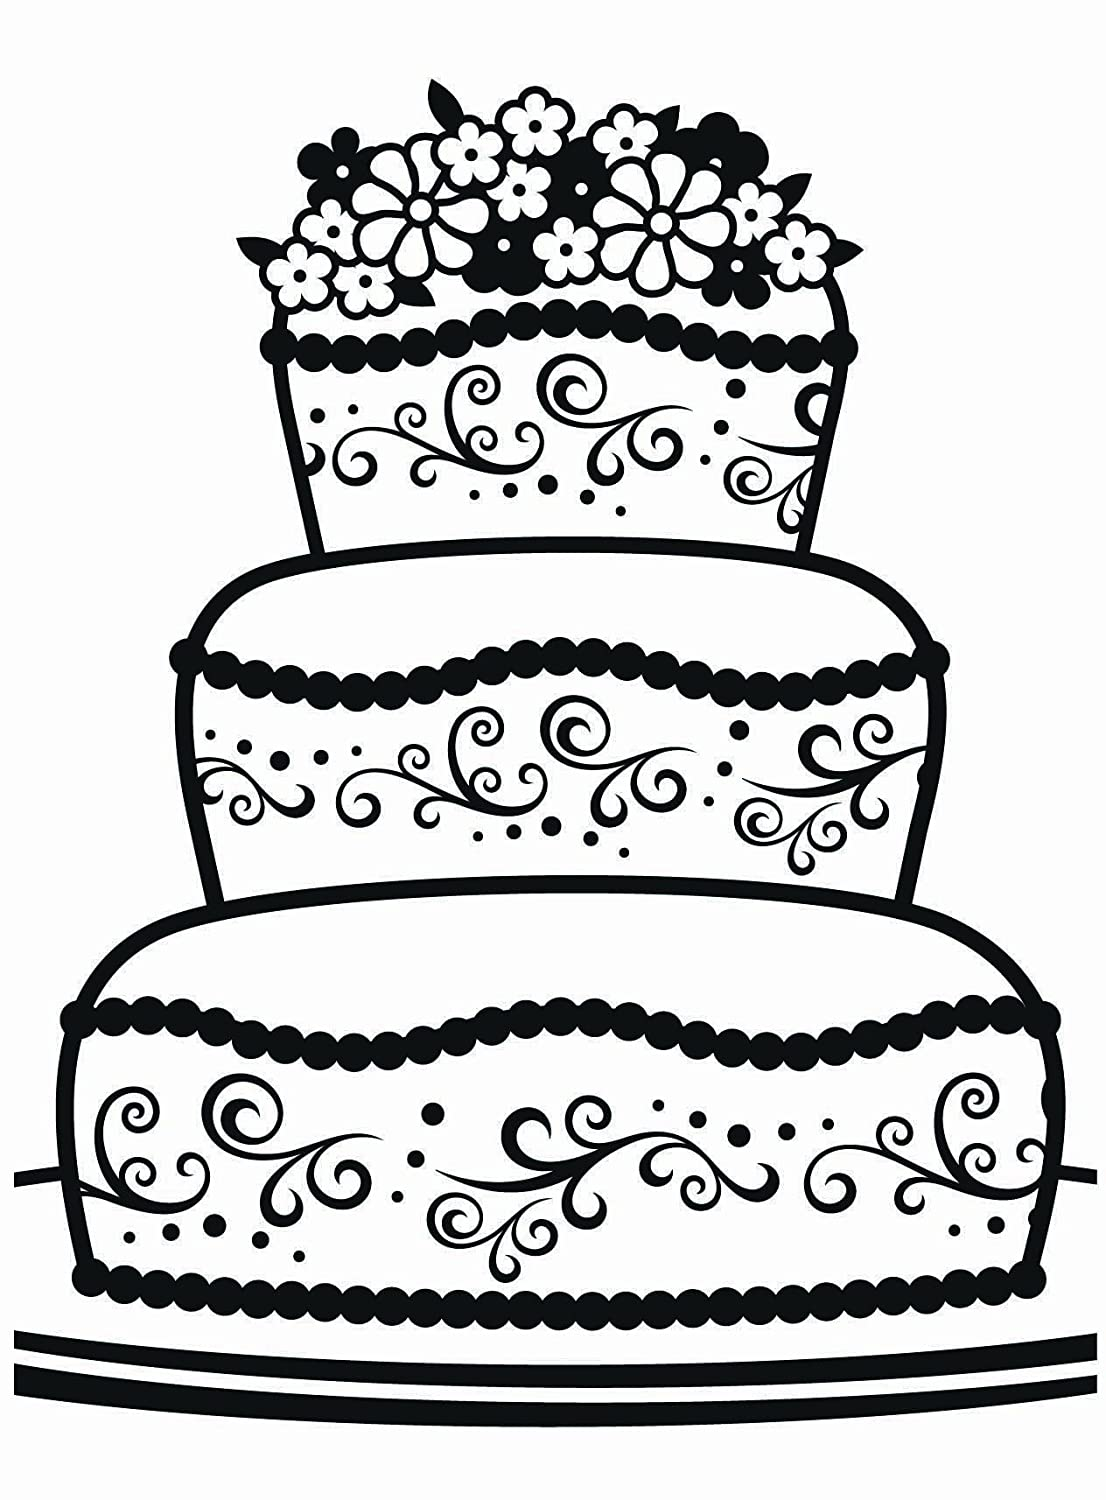 Darice Fancy Cake Embossing Template, Transparent, 10.8 x 14.6 cm 1218-17